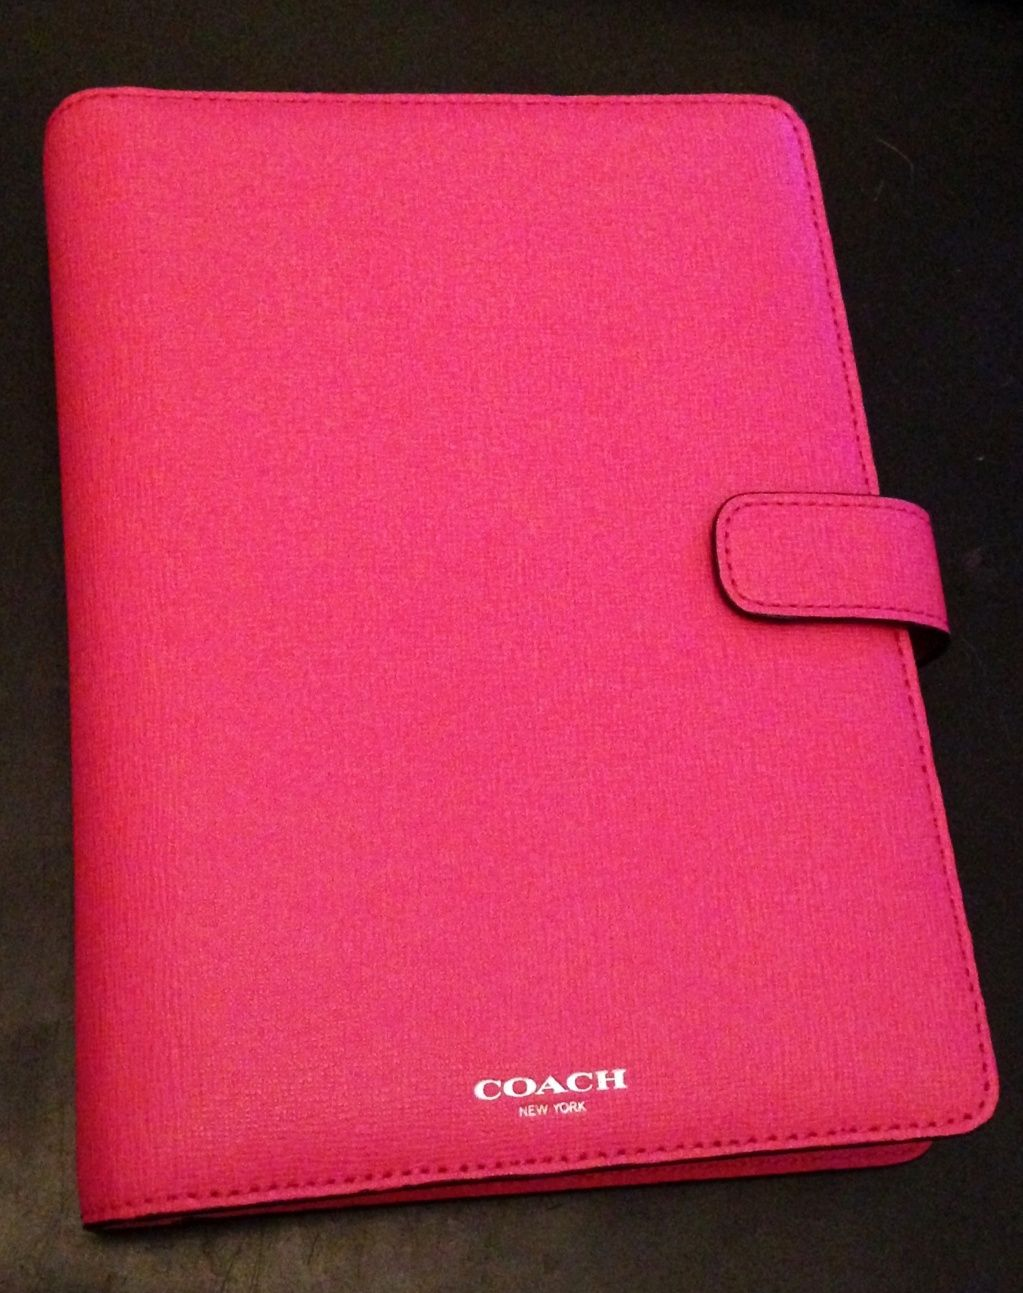 Coach Saffiano leather planner